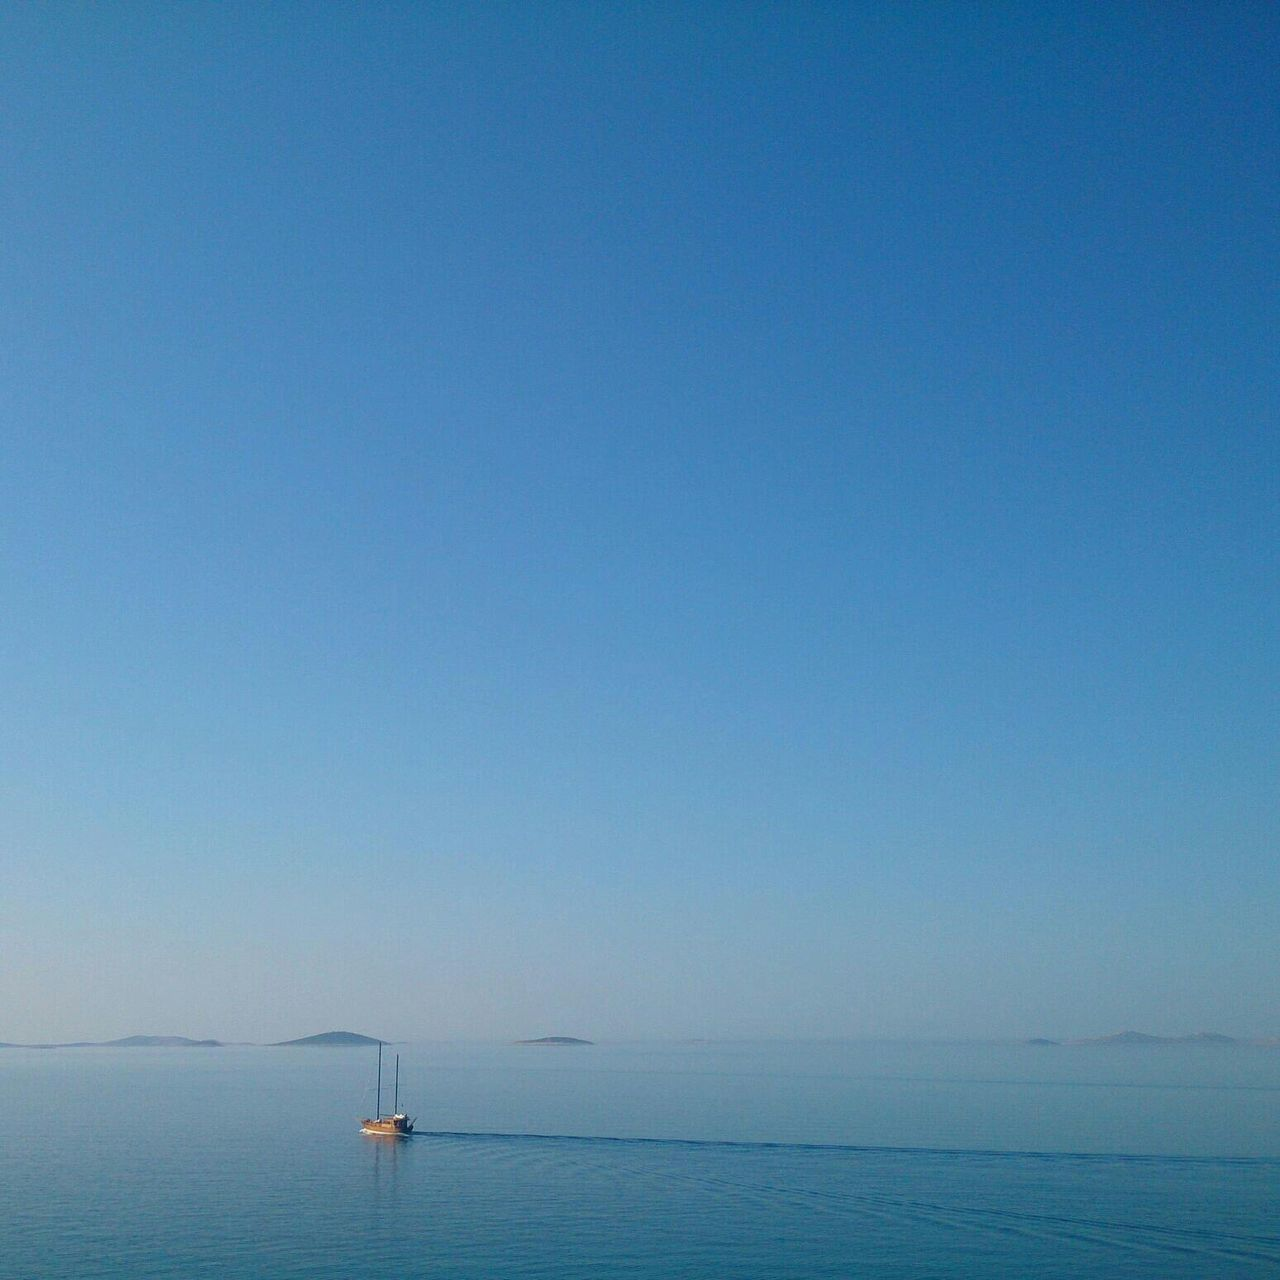 Lone boat at distance in calm blue sea